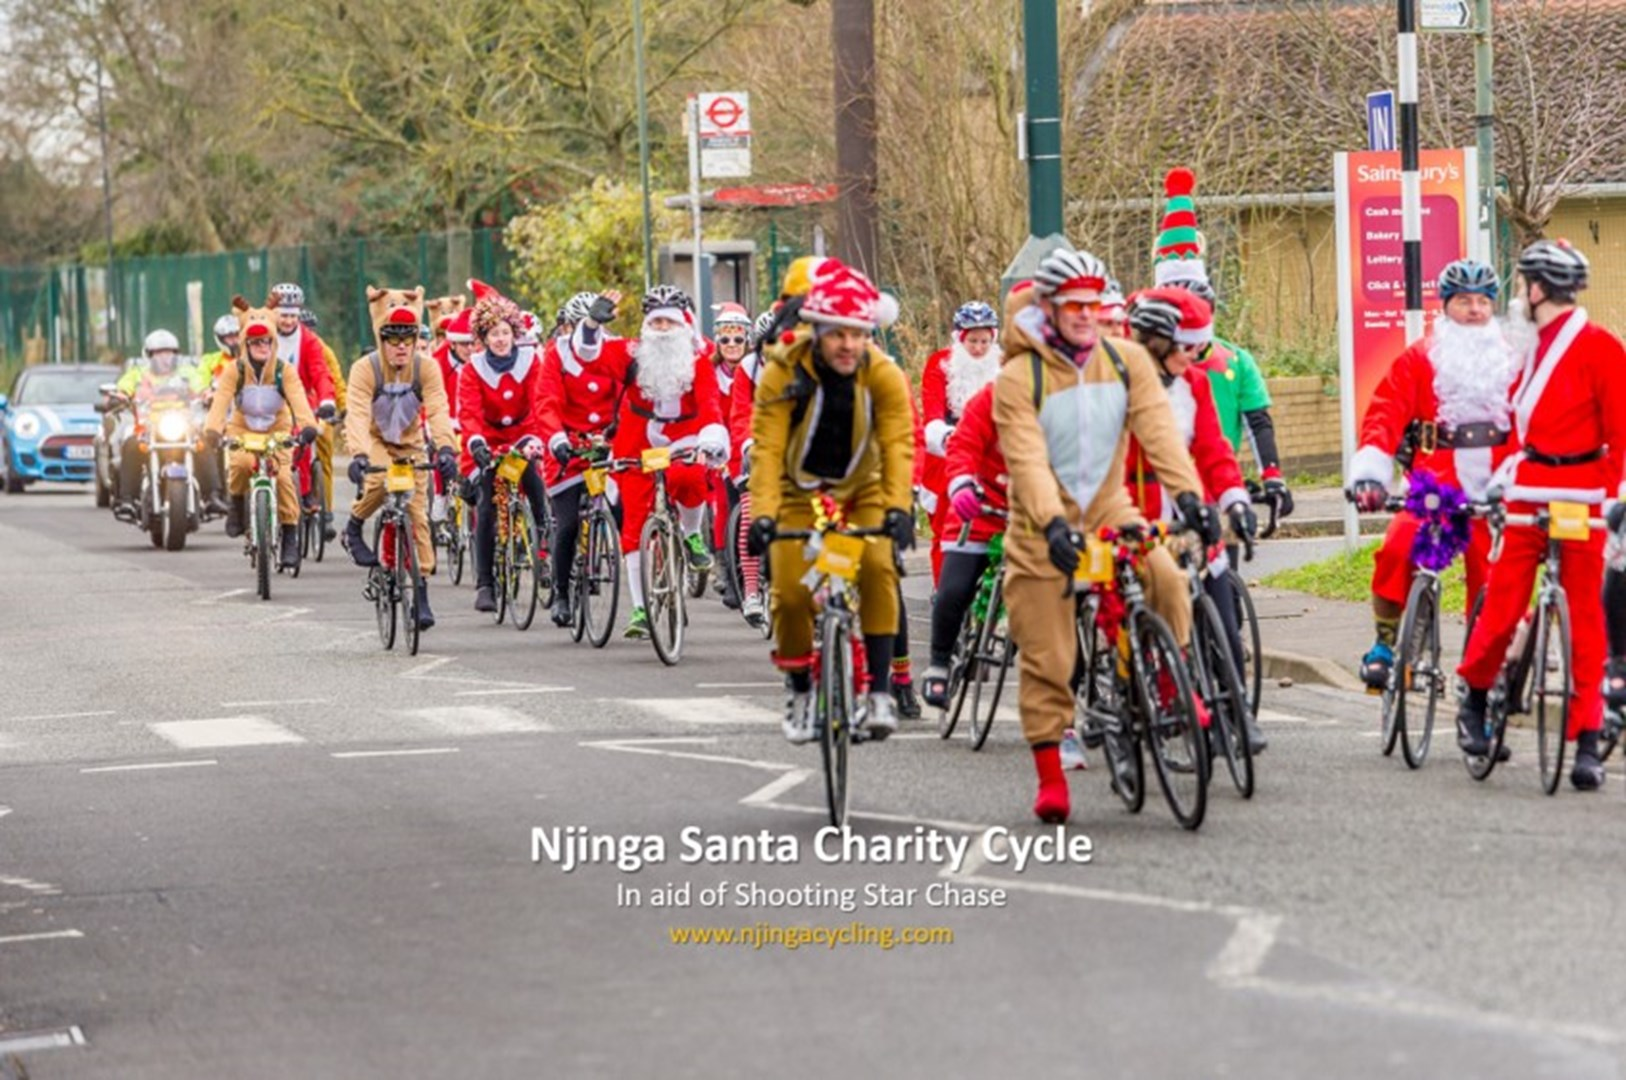 Njinga Cycling is fundraising for Shooting Star Chase 8f178dae7